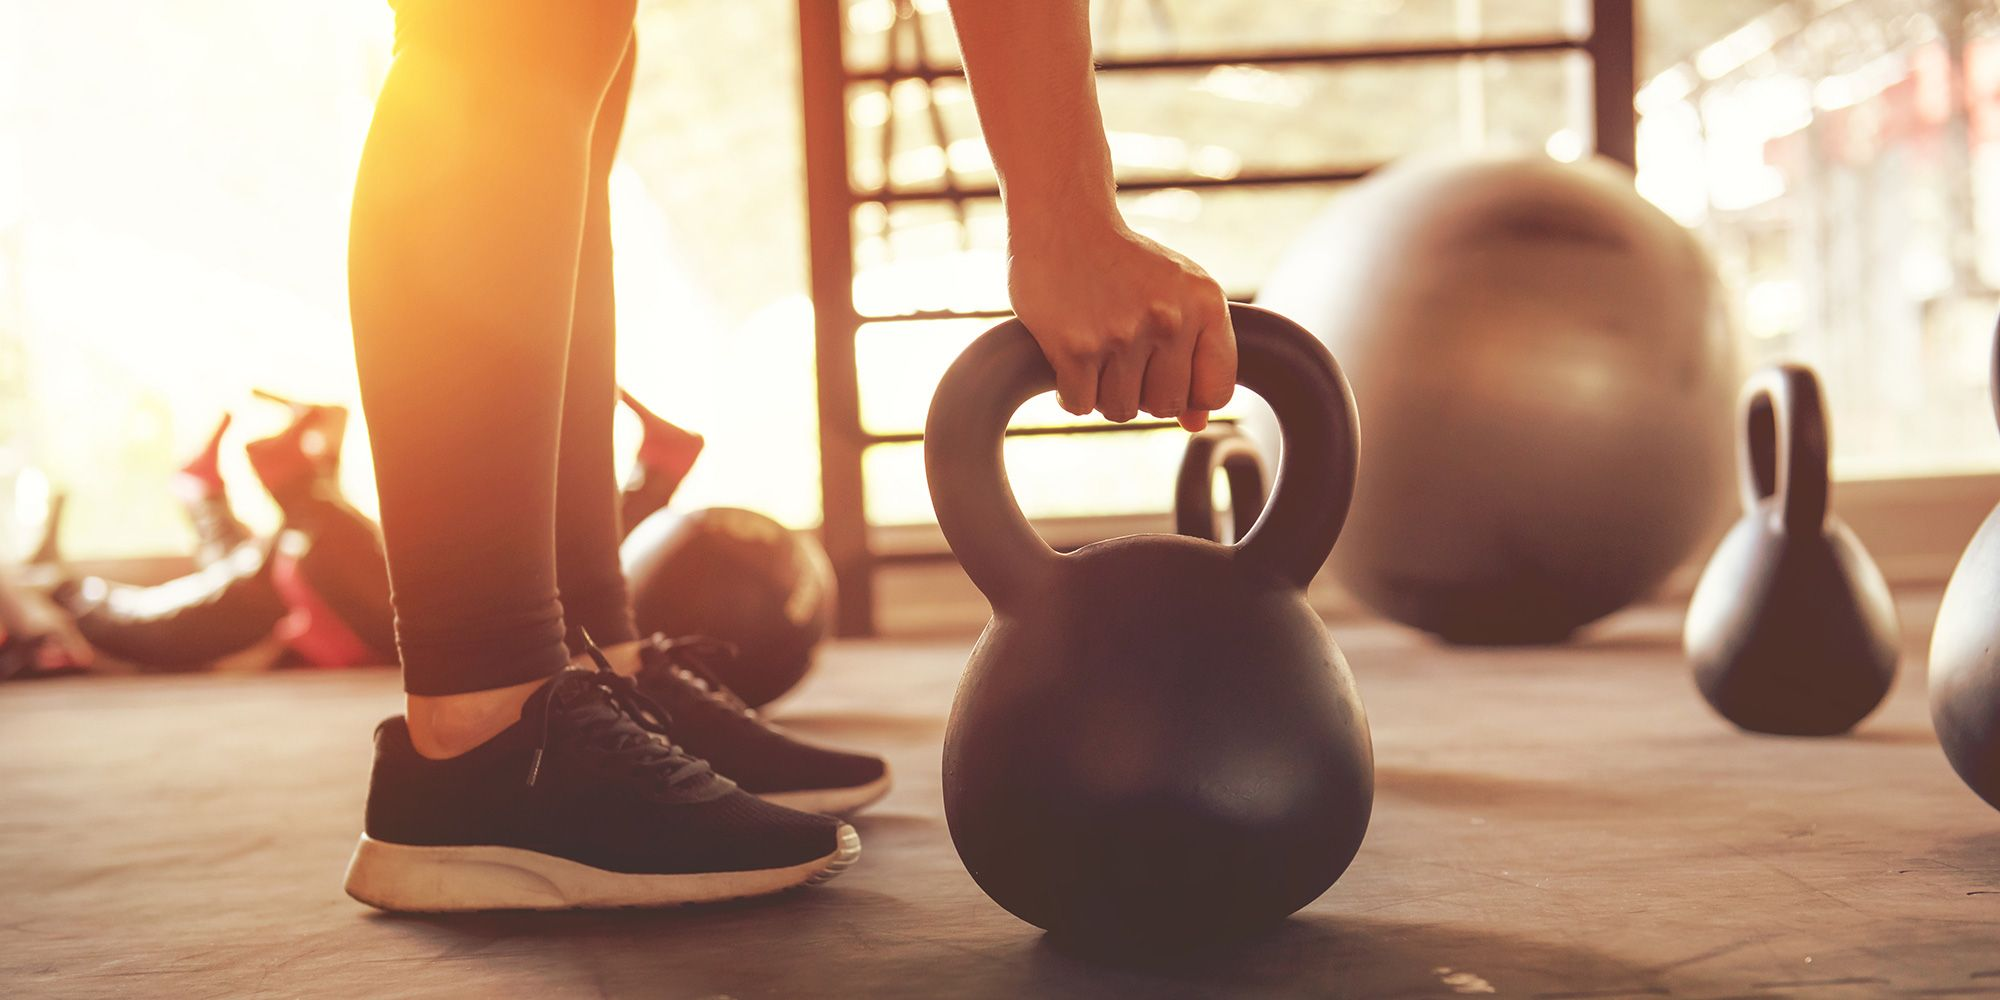 20 simple exercises that start showing results after one workout